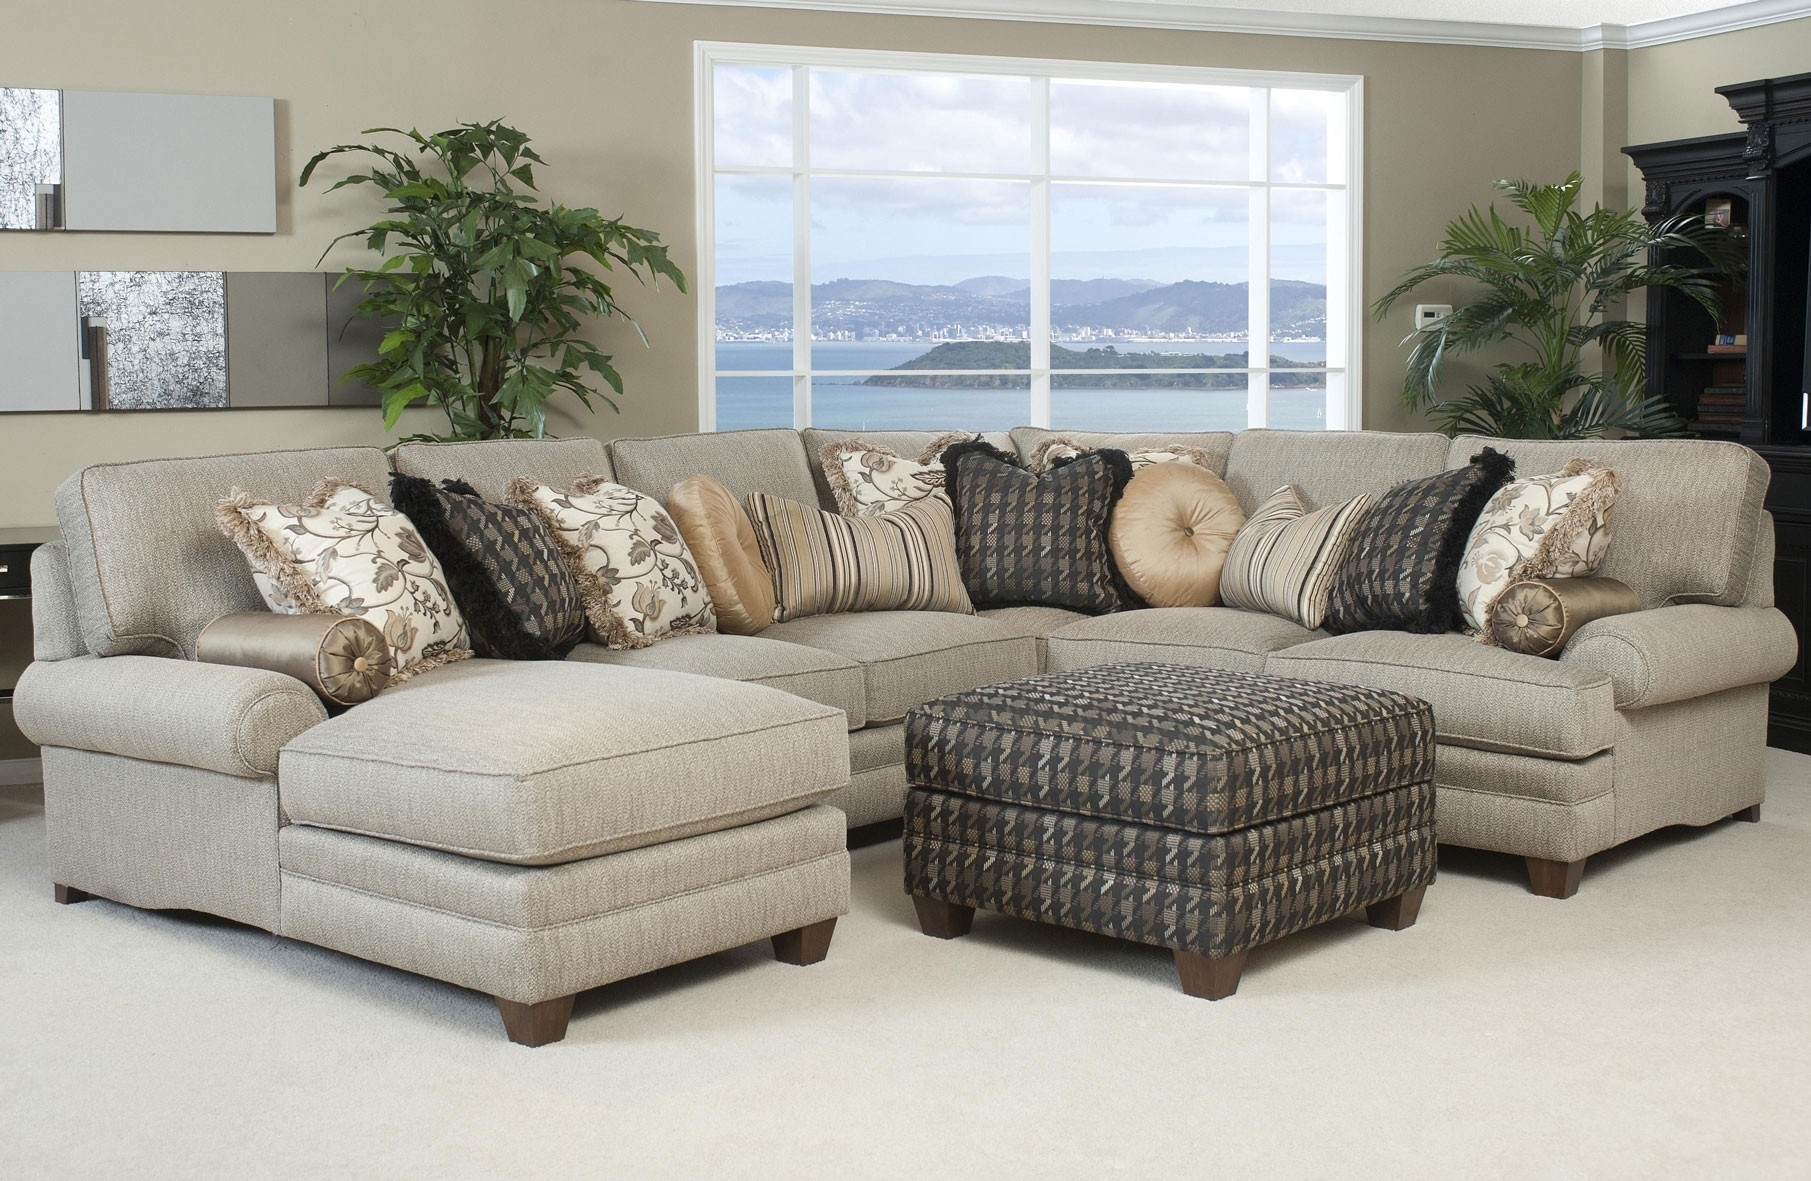 Cheap Sectional Sofas In Roanoke Va | Home Decoration Ideas Inside Roanoke Va Sectional Sofas (Image 3 of 10)